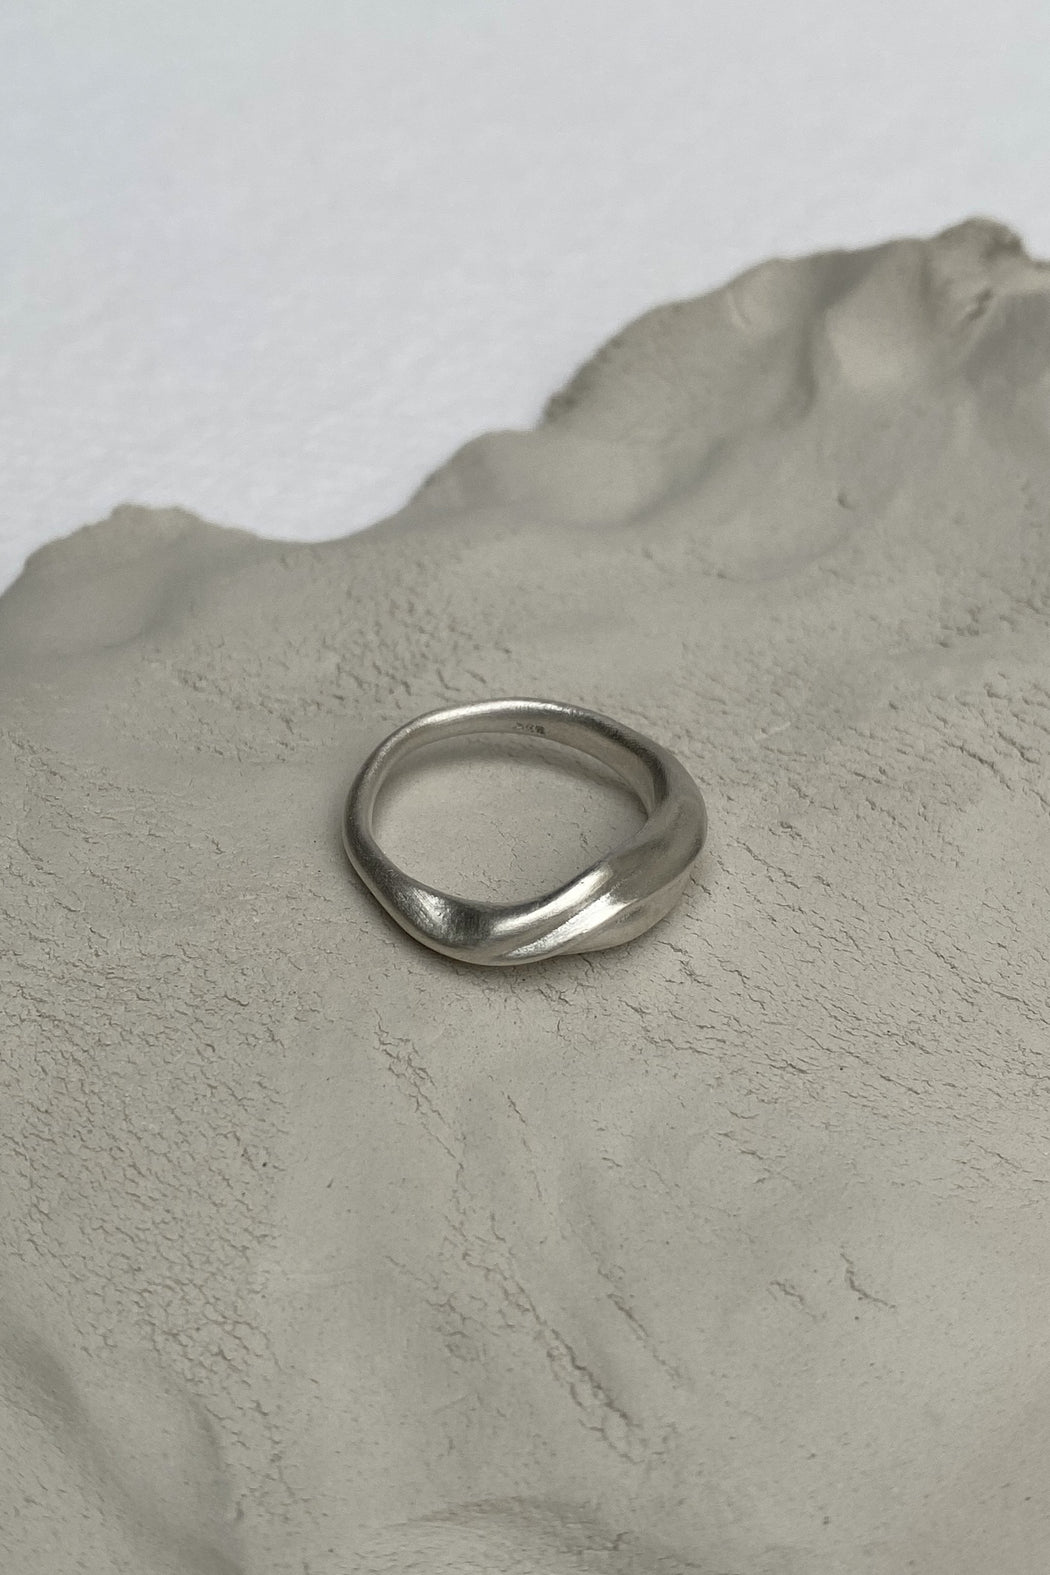 BAIUSHKI YERERA small ring